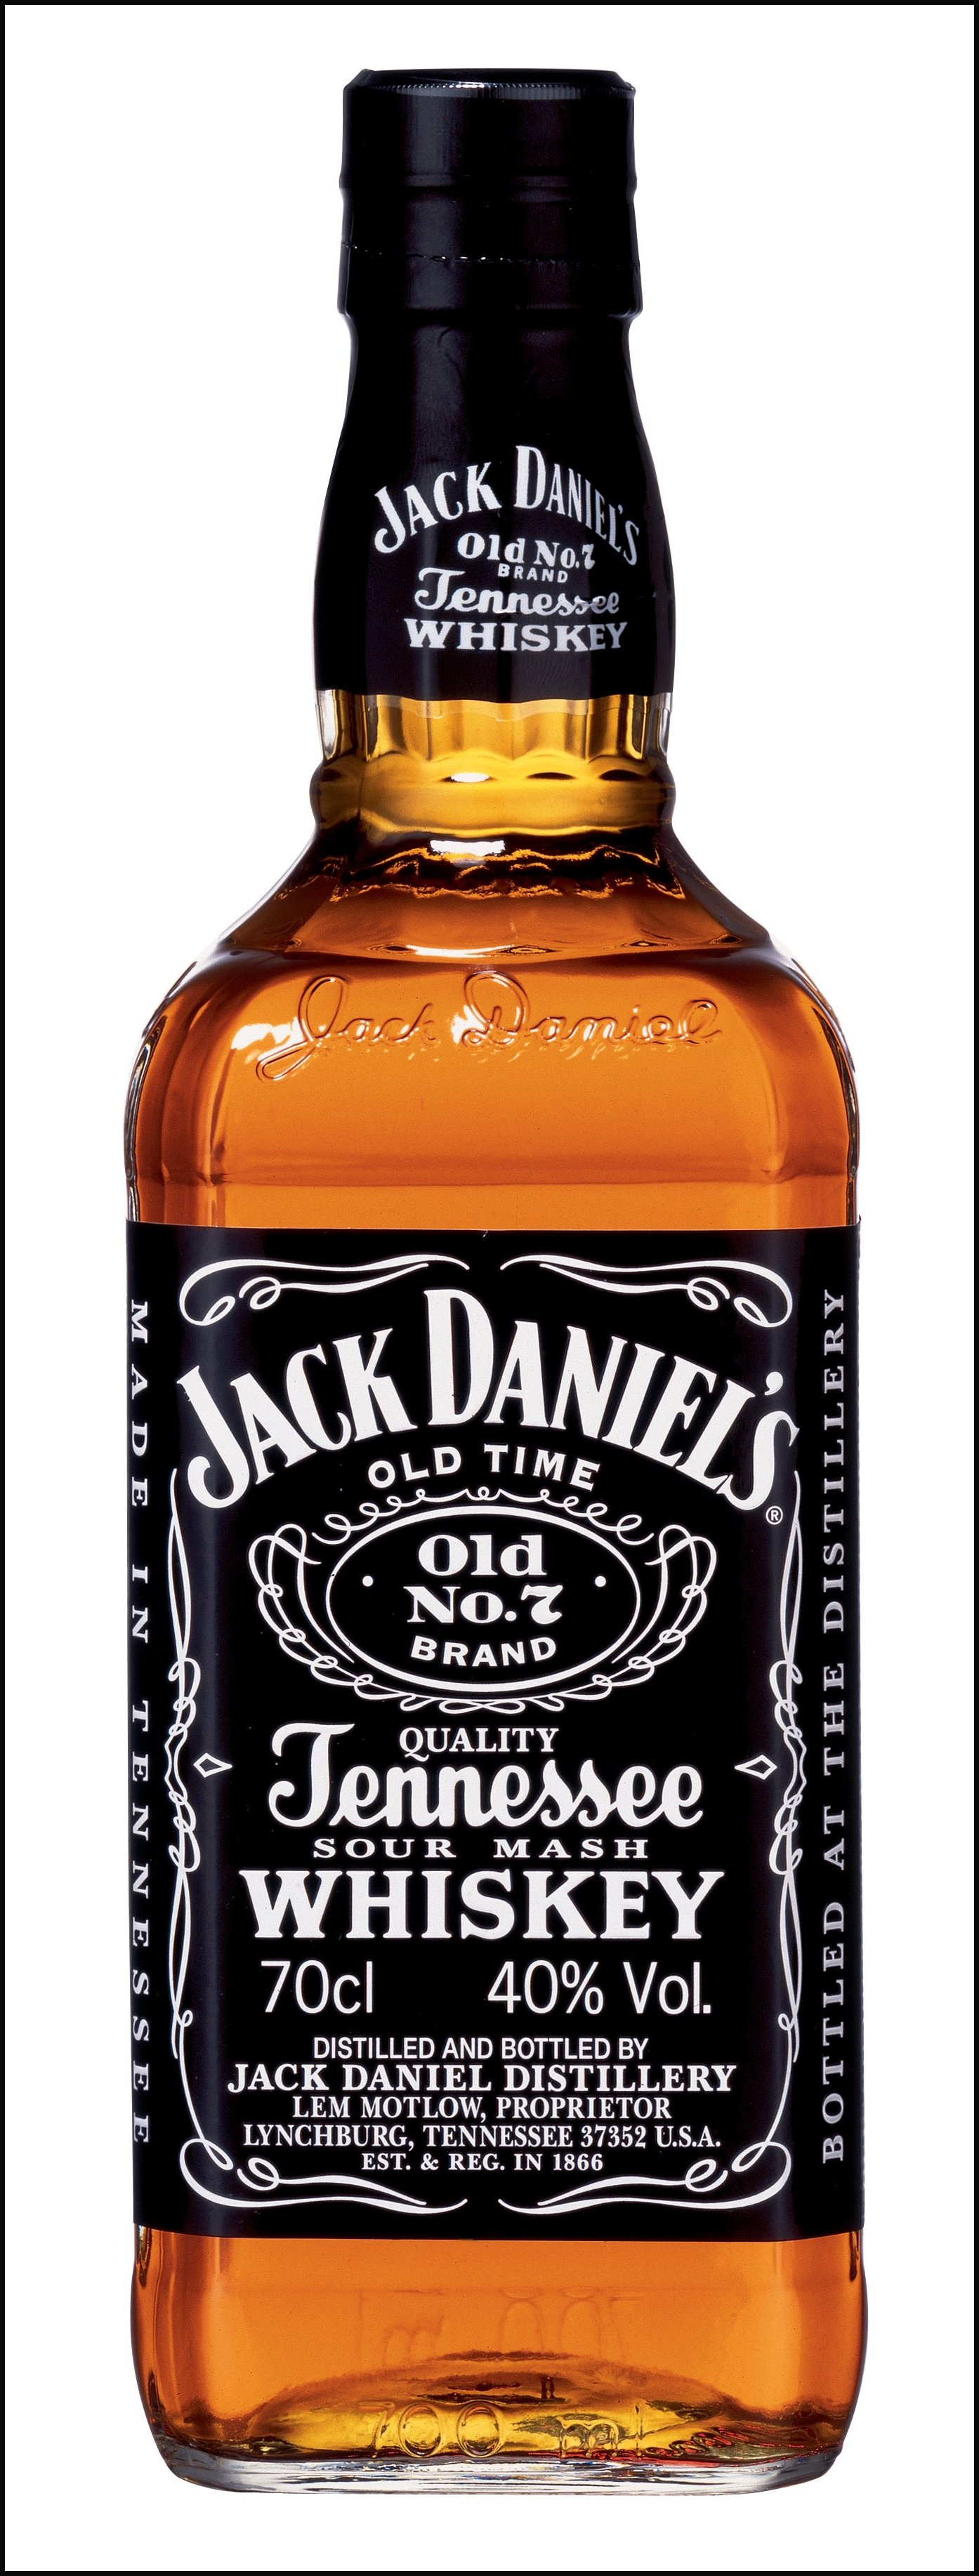 1394x3669 > Jack Daniels Wallpapers